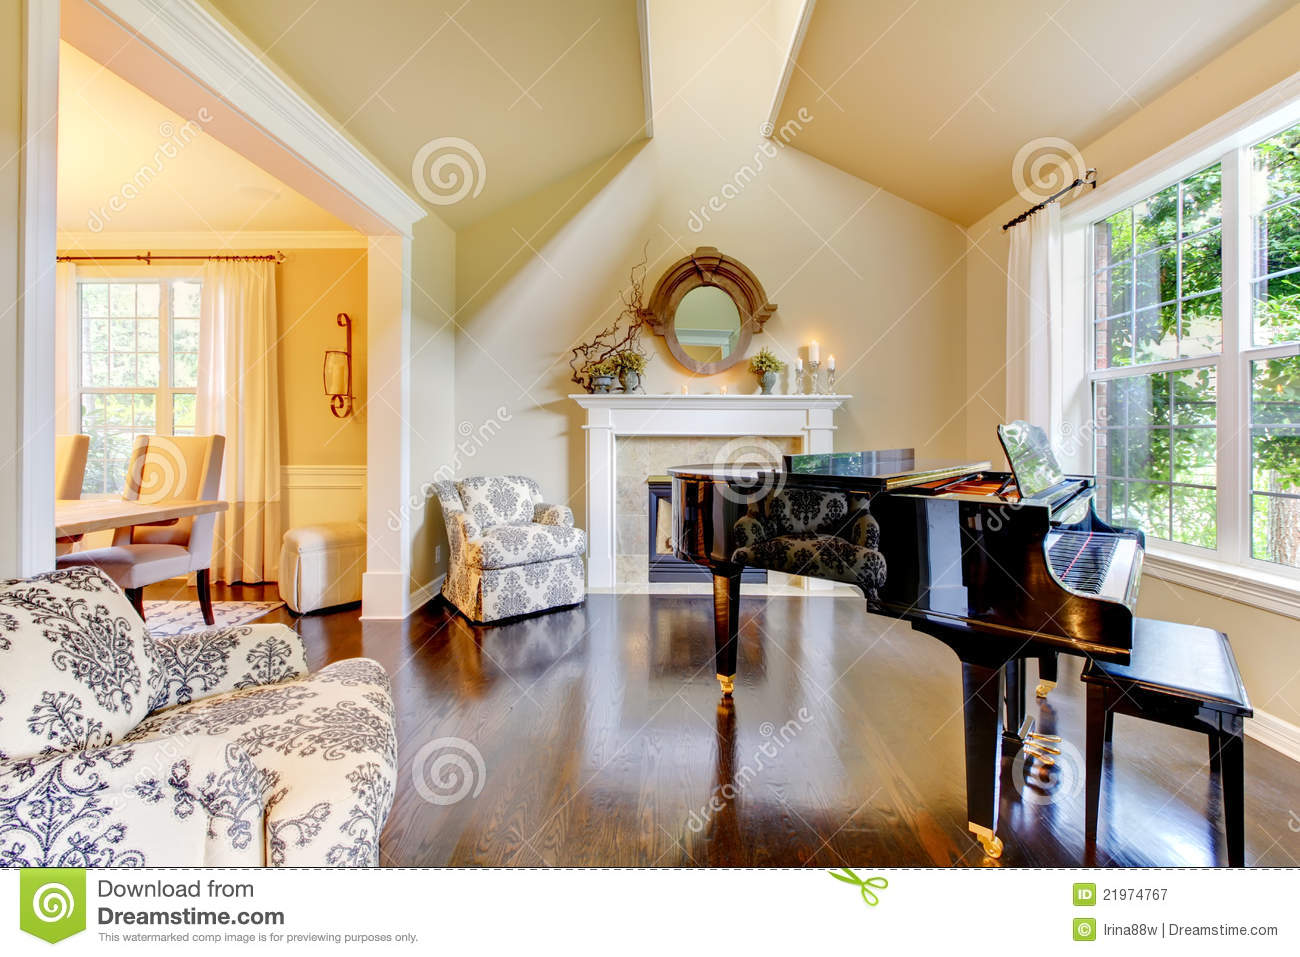 Lichtsysteme Wohnzimmer Cream Yellow Living Room With Piano And Fireplace Stock